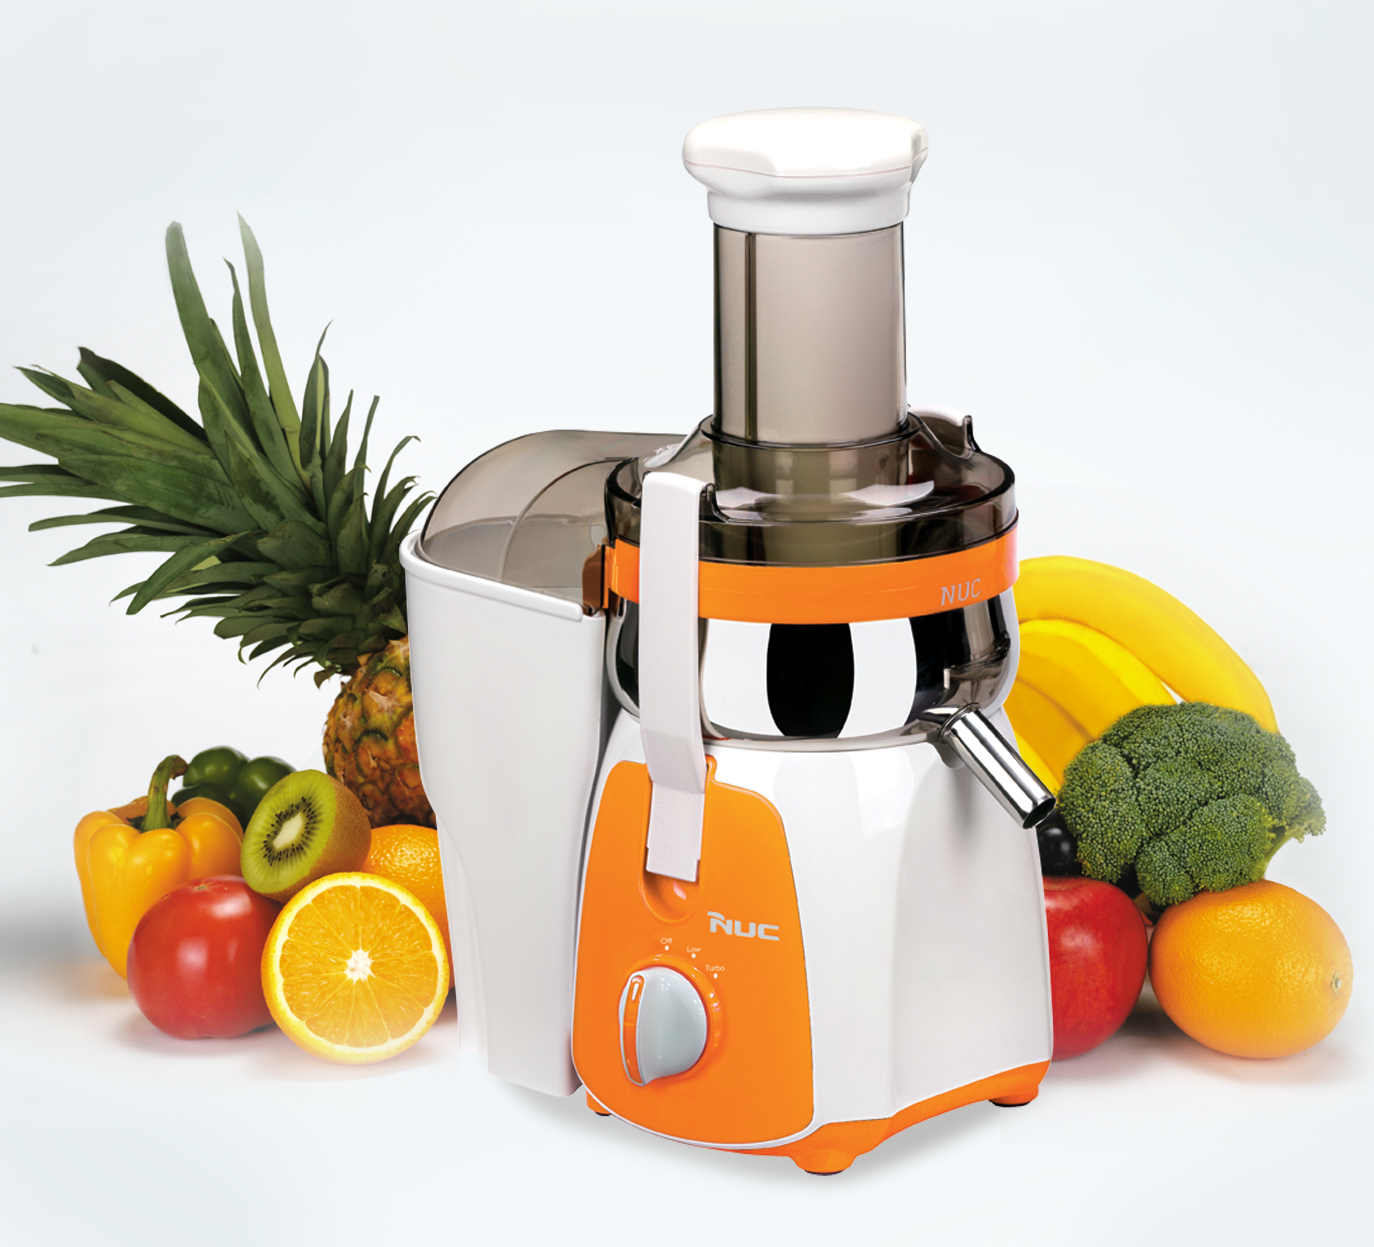 Kuvings nj9310u juicer professional centrifugal 350w